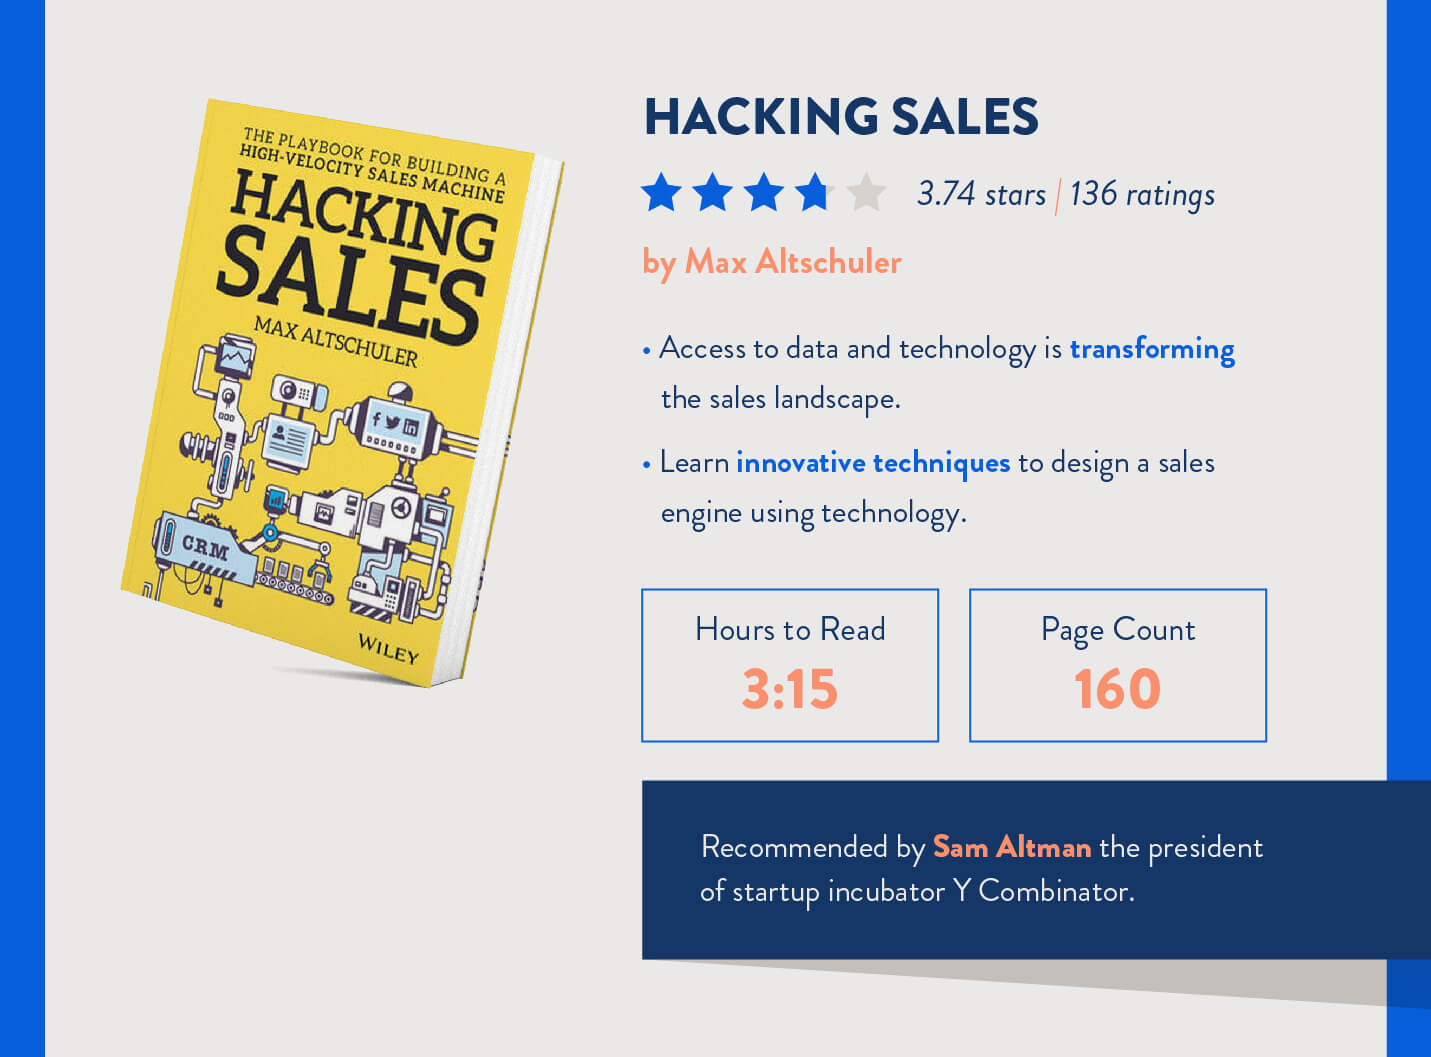 hacking sales book with ratings, time to read, page count, and recommendations